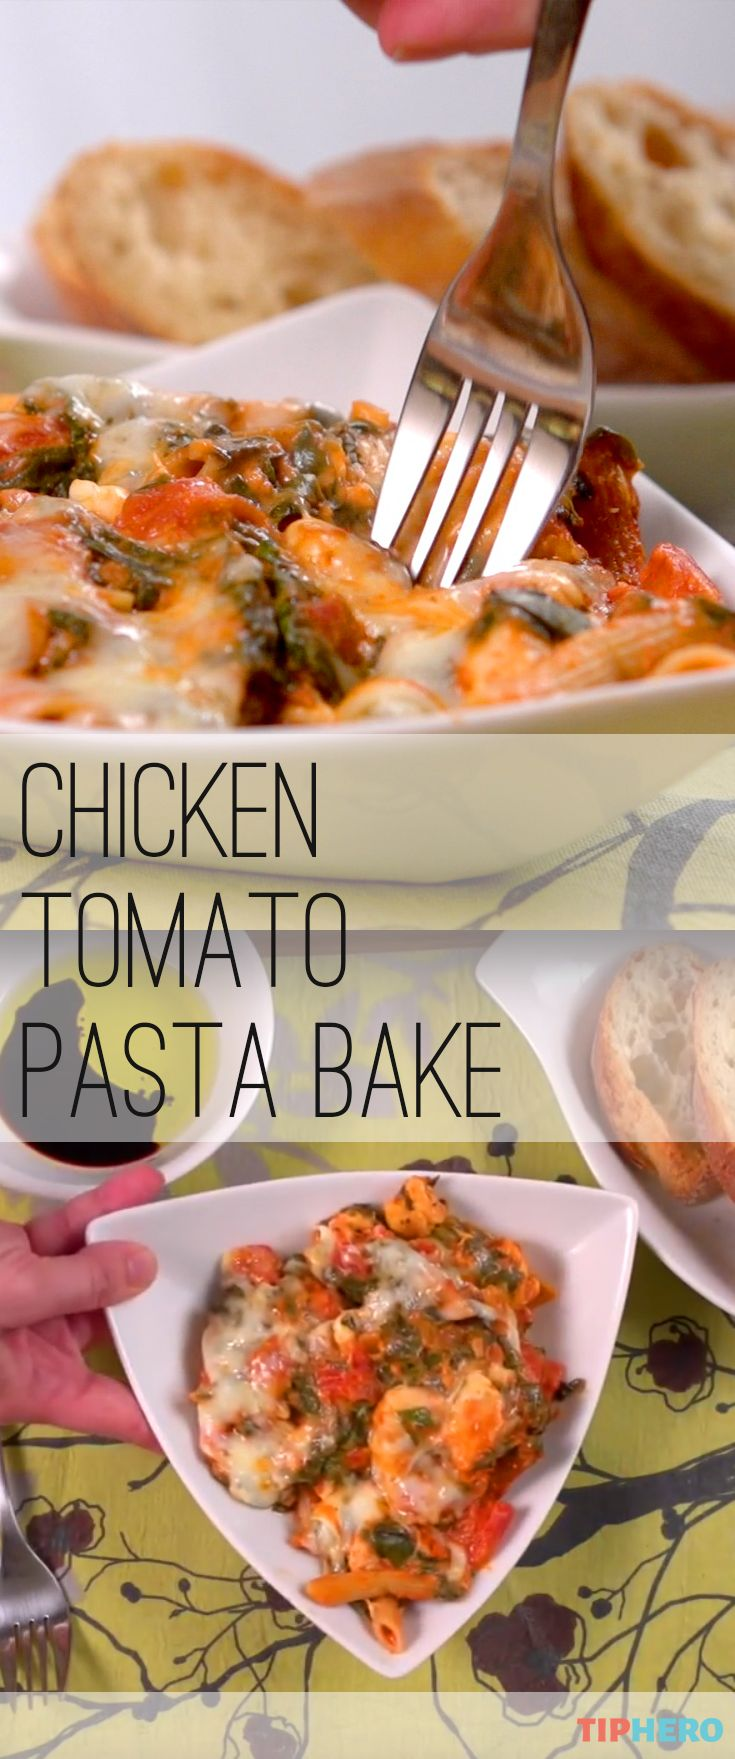 Chicken tomato pasta bake | Recipe | Spinach, Kinds of ...